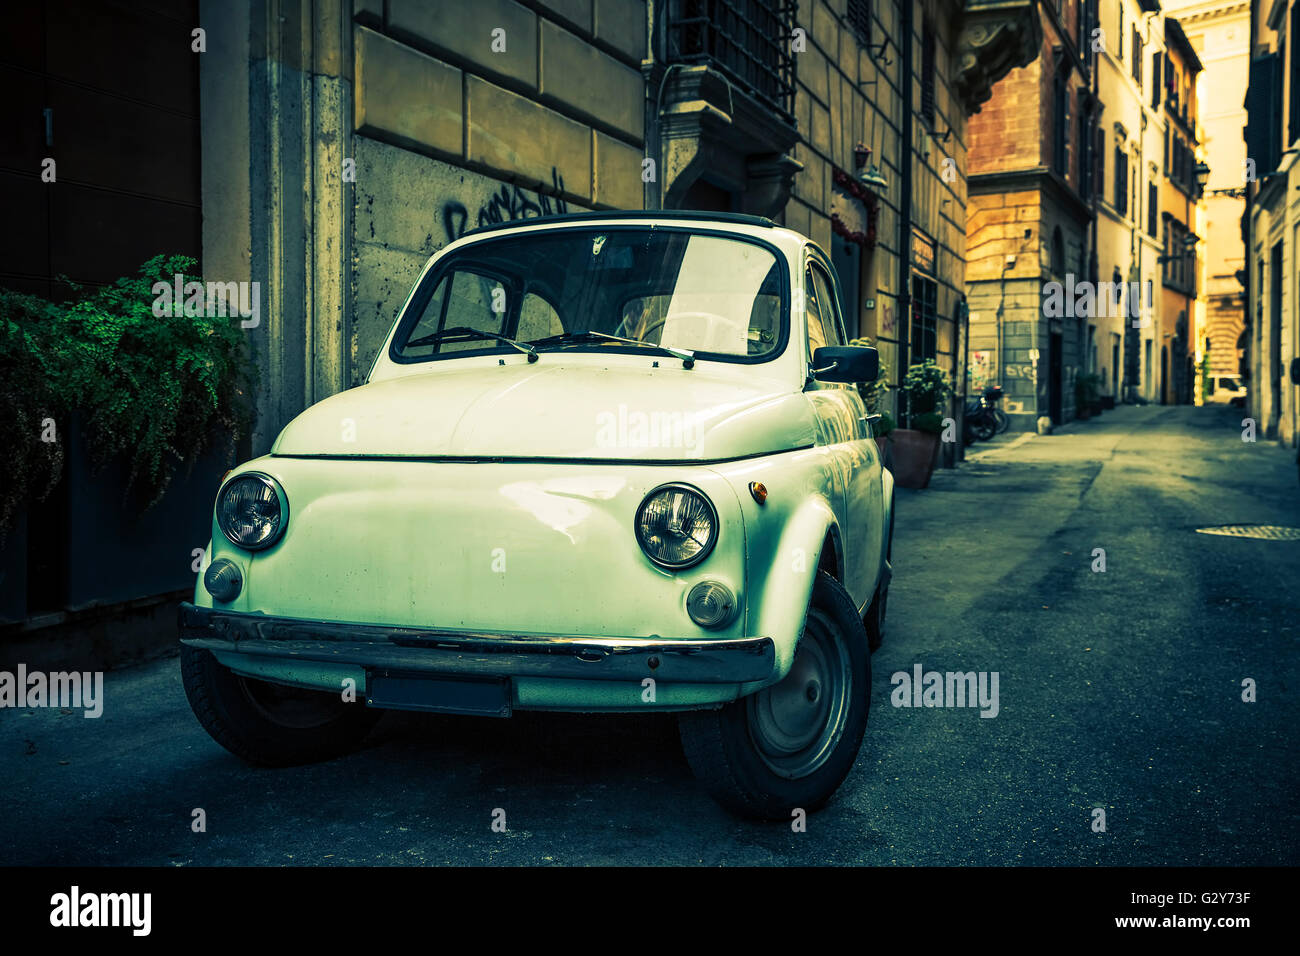 ROME - MAY 27, 2016: A Fiat 500 on September 13, 2011 in Rome. Launched as the Nuova (new) 500 in July 1957, it - Stock Image